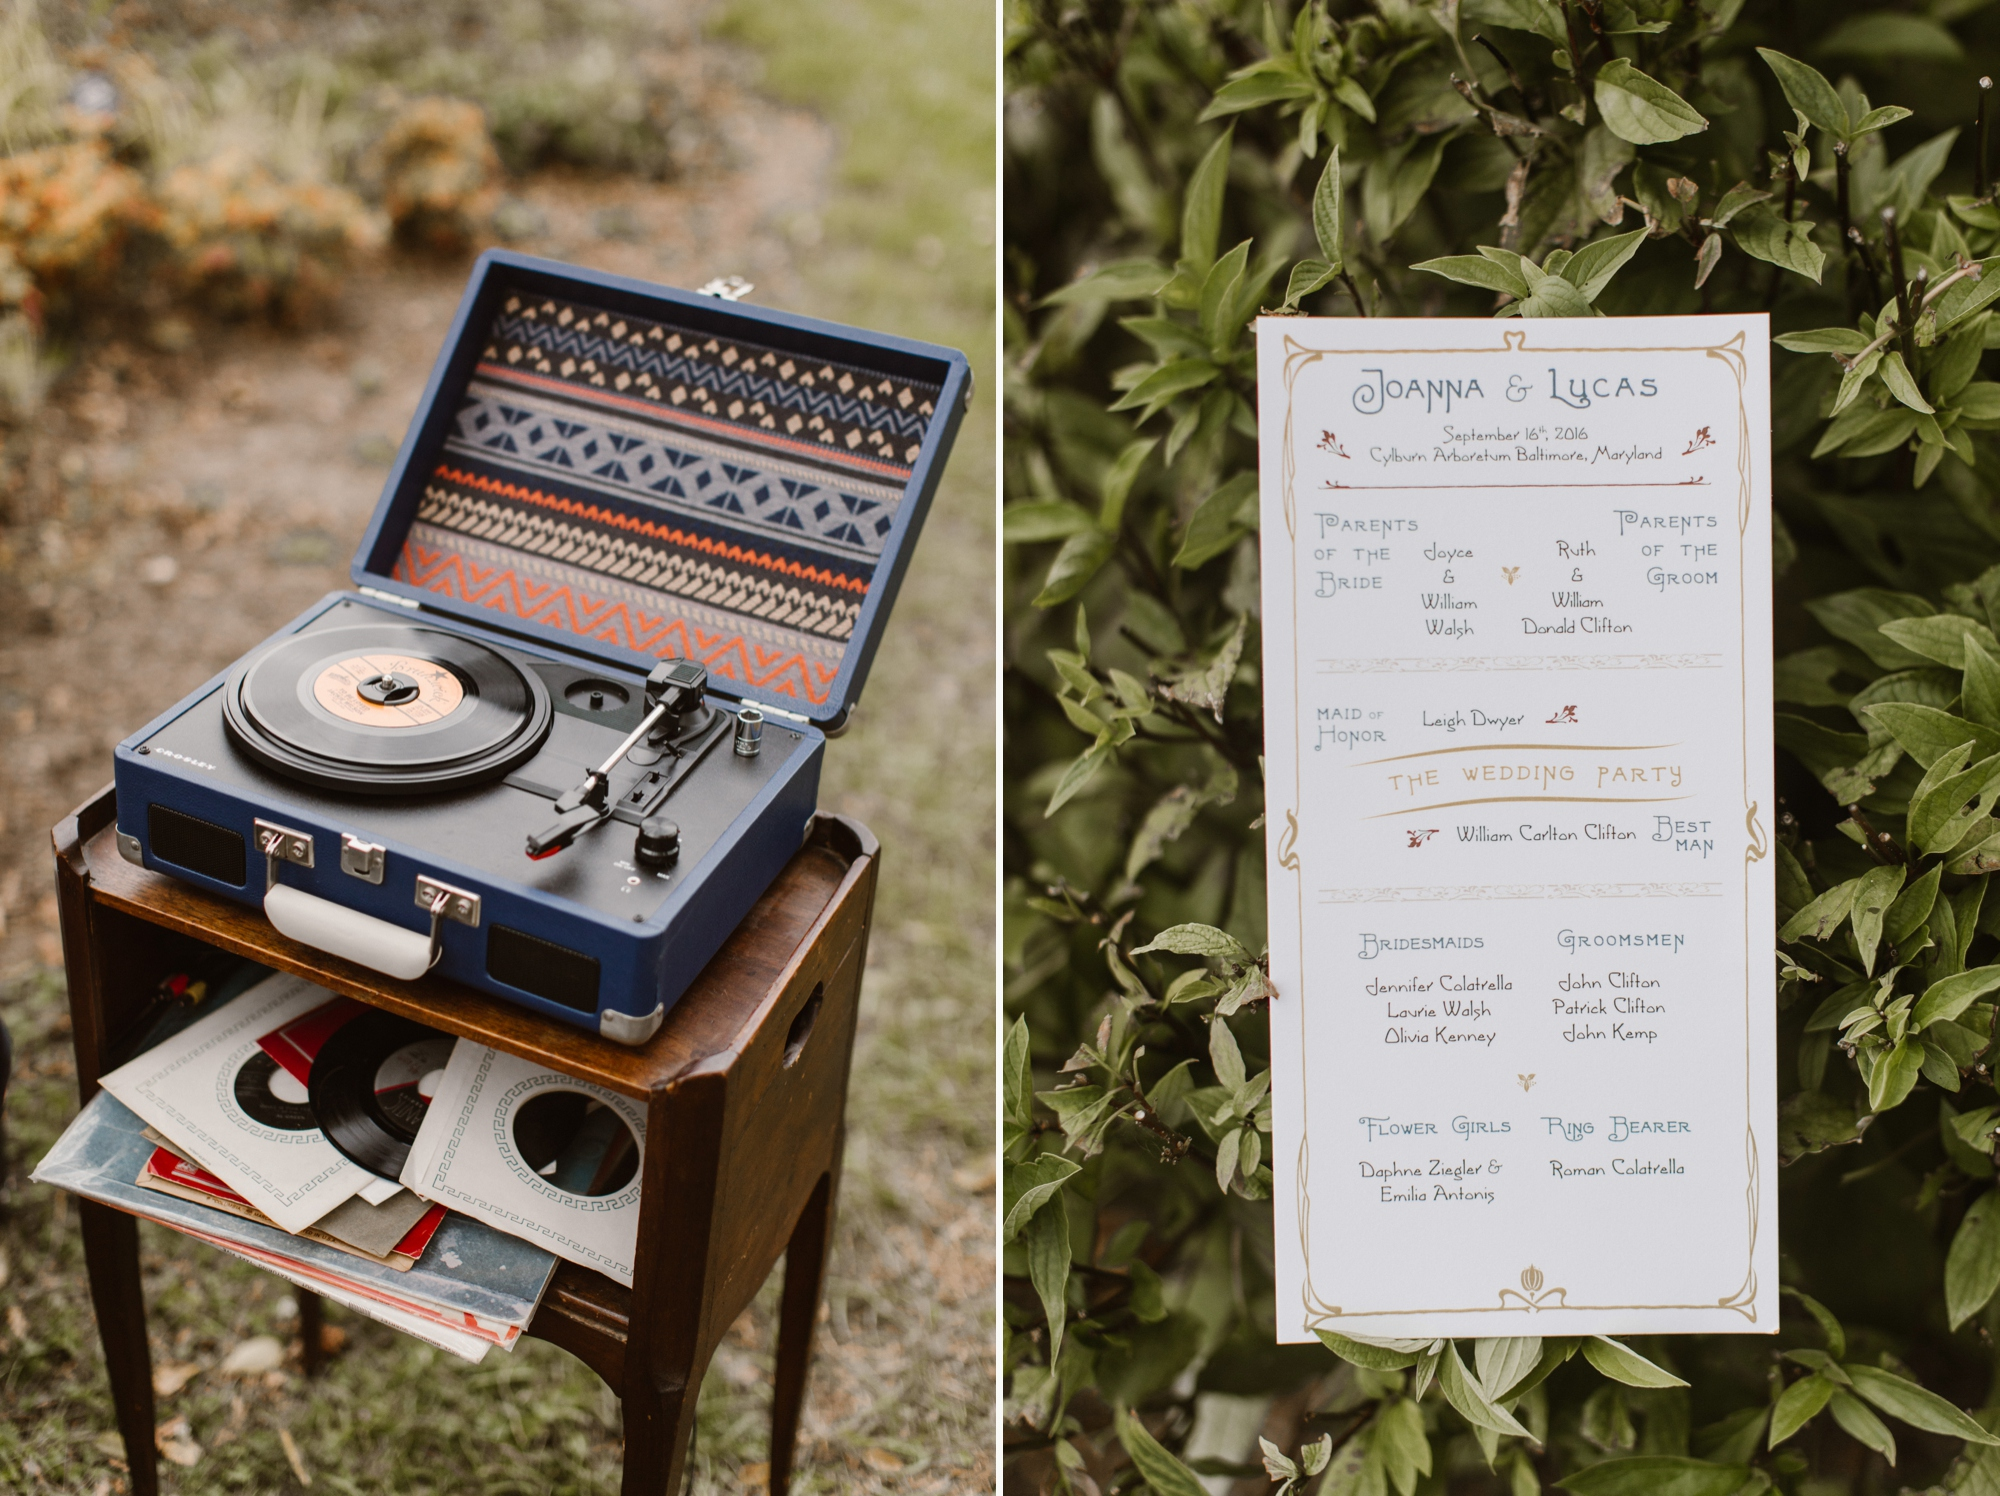 Cylburn Arboretum Wedding | by Baltimore, Maryland Photographer Kate Ann Photography | Vinyl Player for the Ceremony